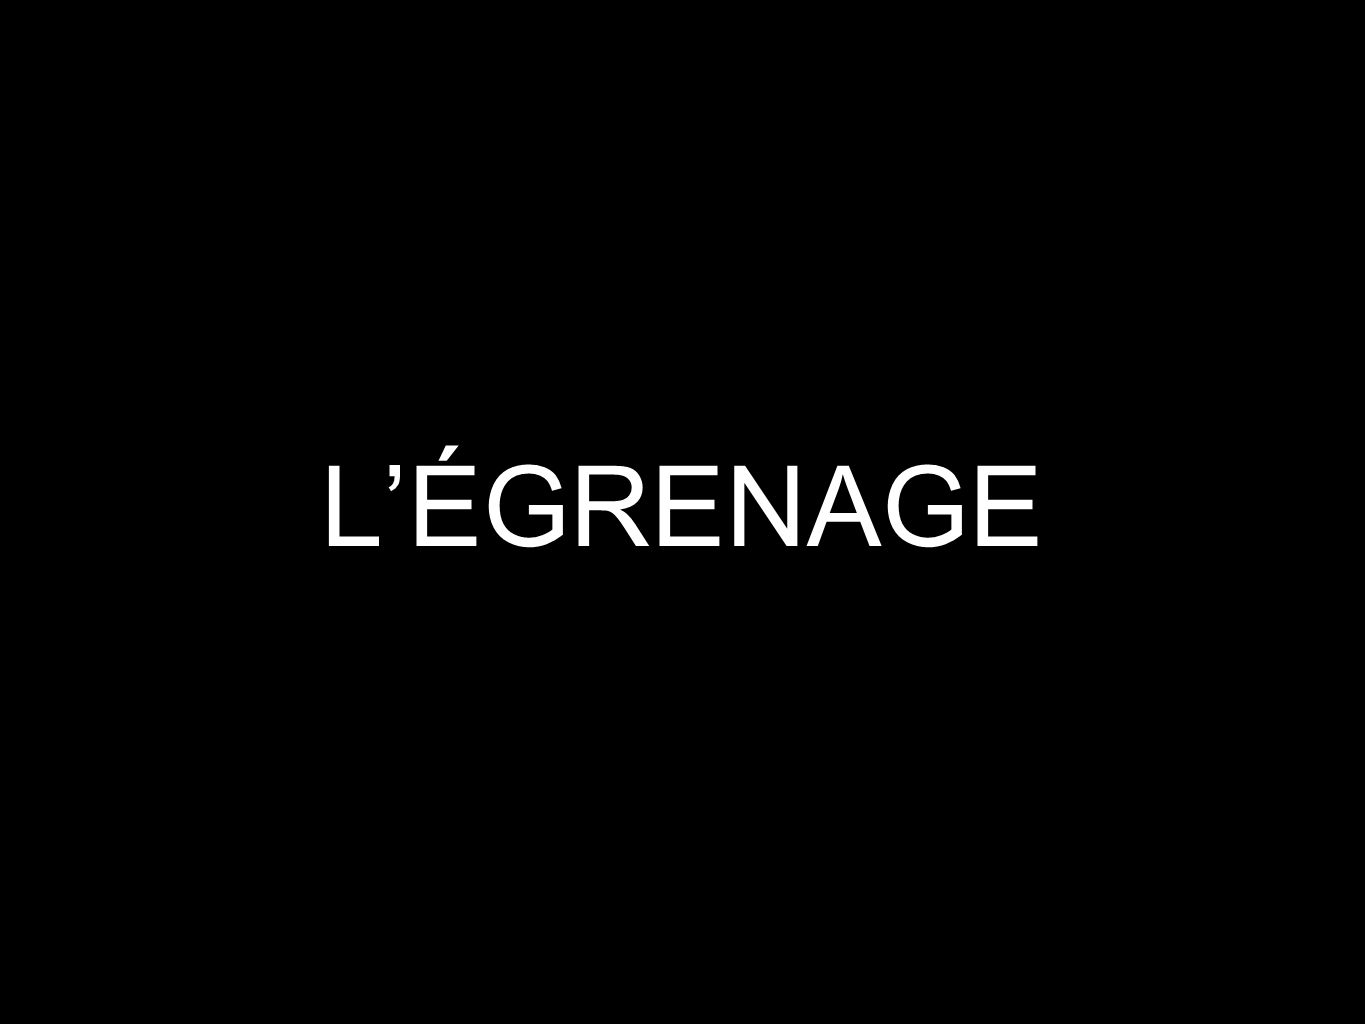 L'ÉGRENAGE